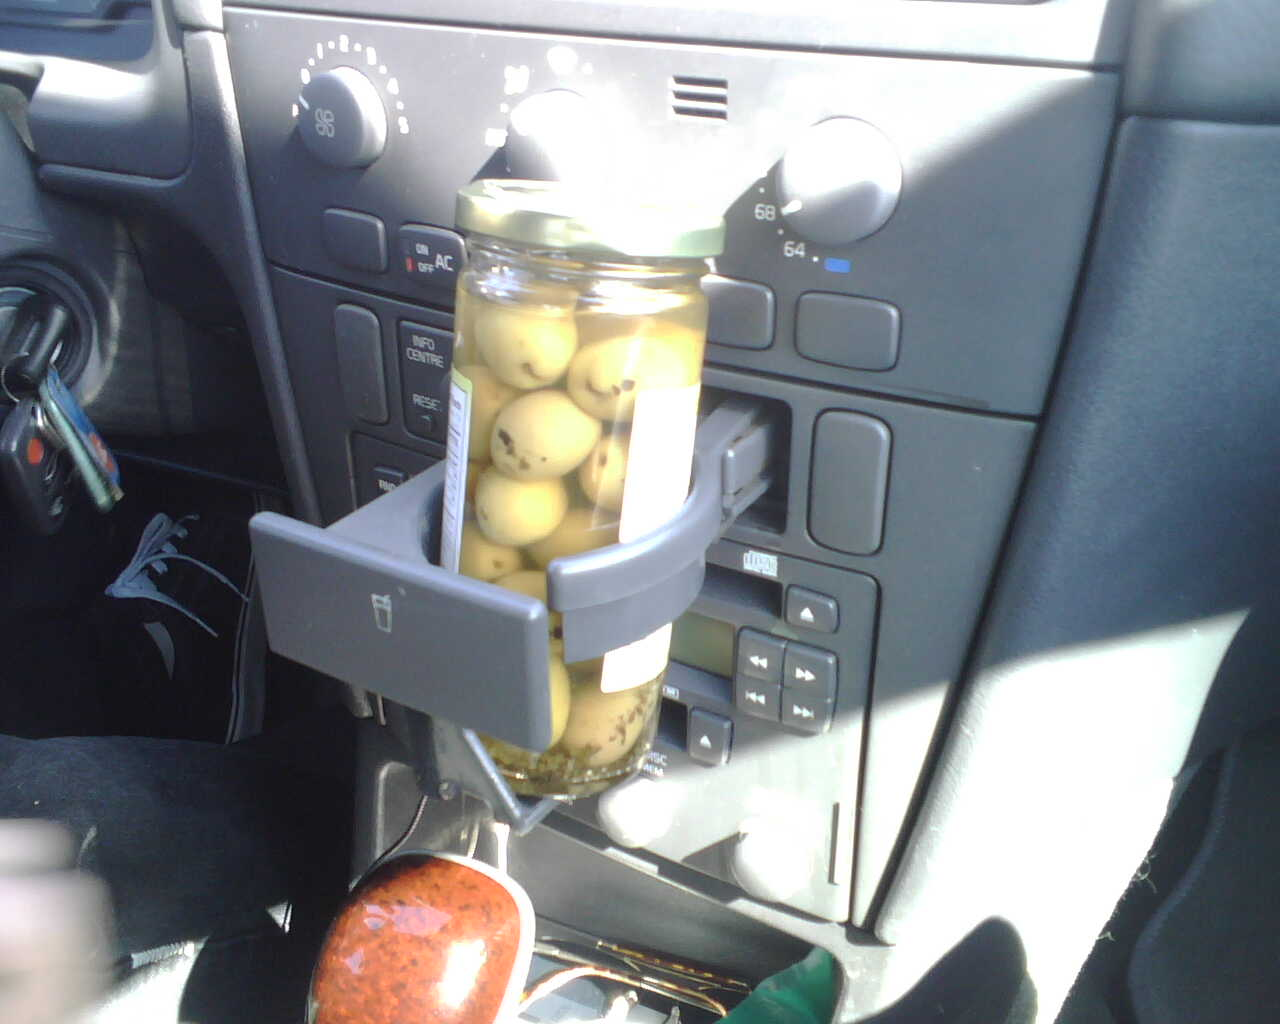 sharpe got us from the airport. he likes olives.